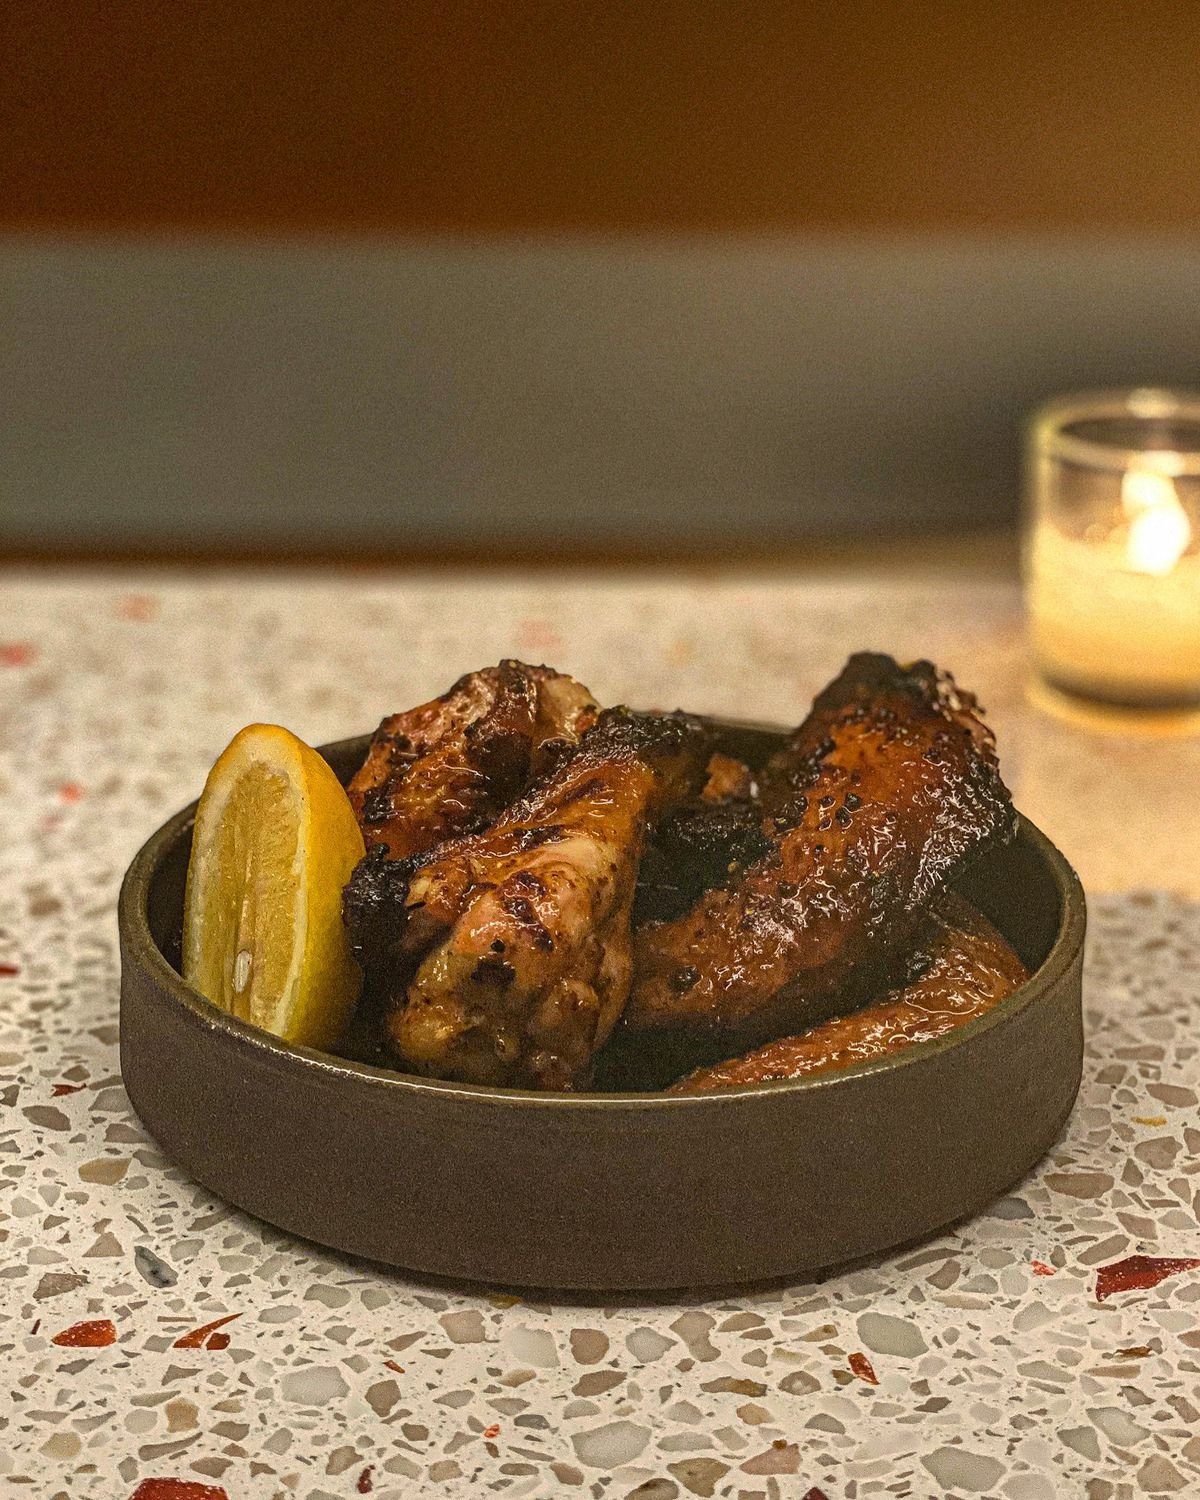 Grilled chicken wings at Eszett in Silver Lake.